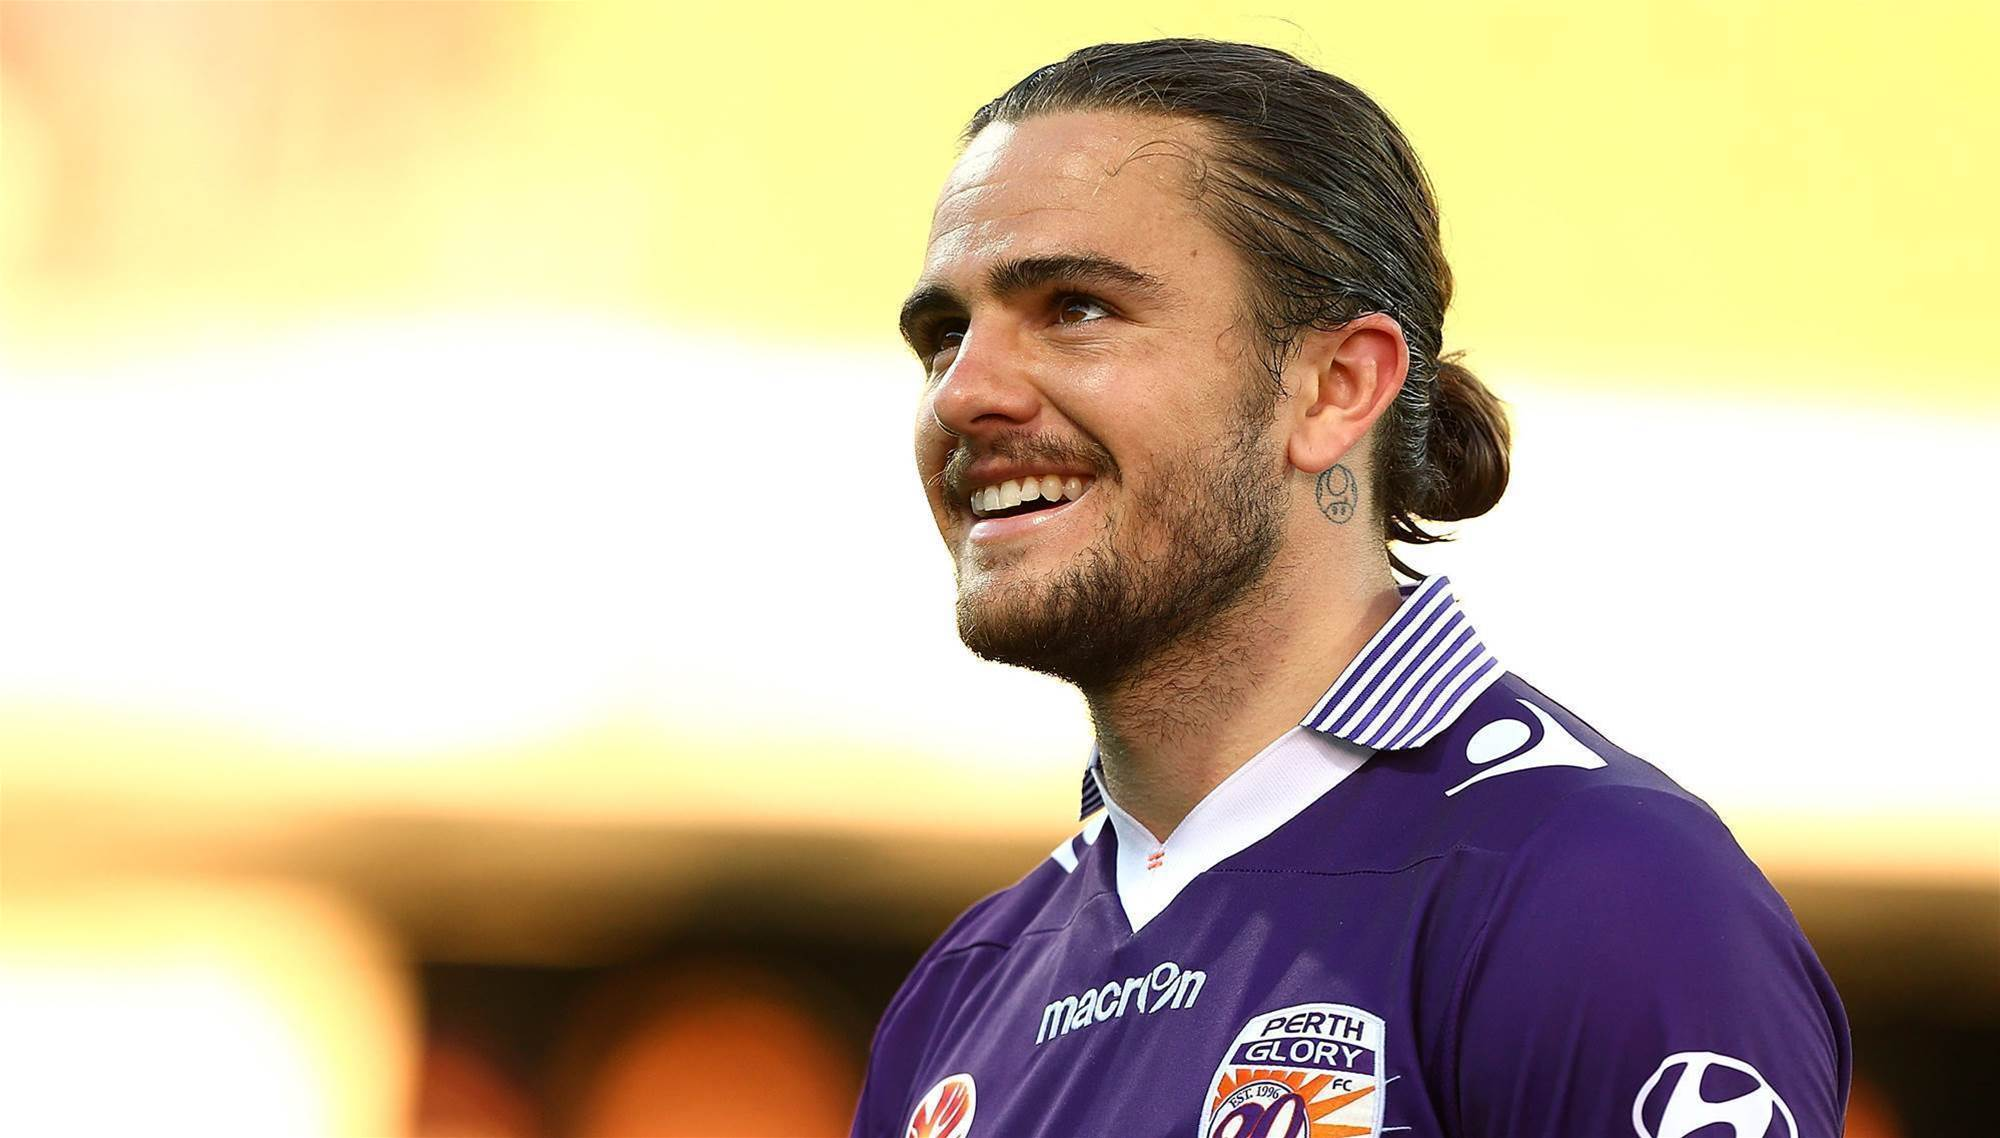 Glory blow as Risdon signals exit